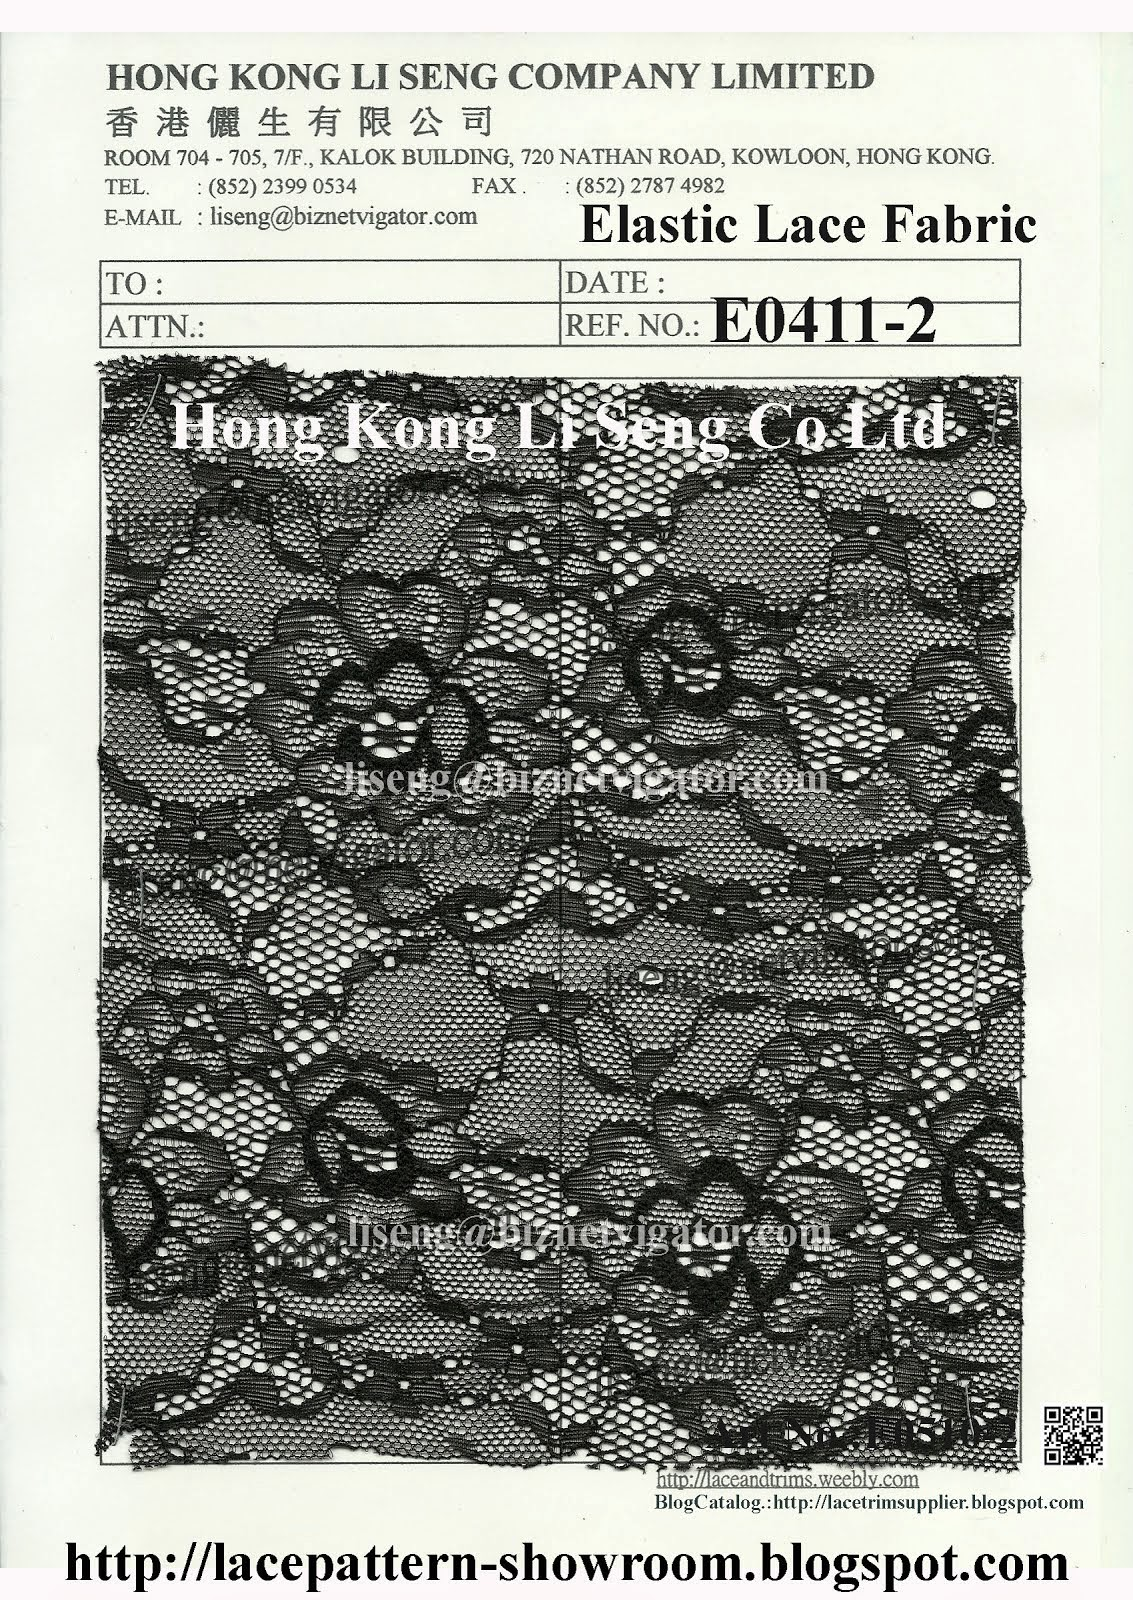 Elastic Lace Fabric Manufacturer Wholesaler and Supplier - Hong Kong Li Seng Co Ltd